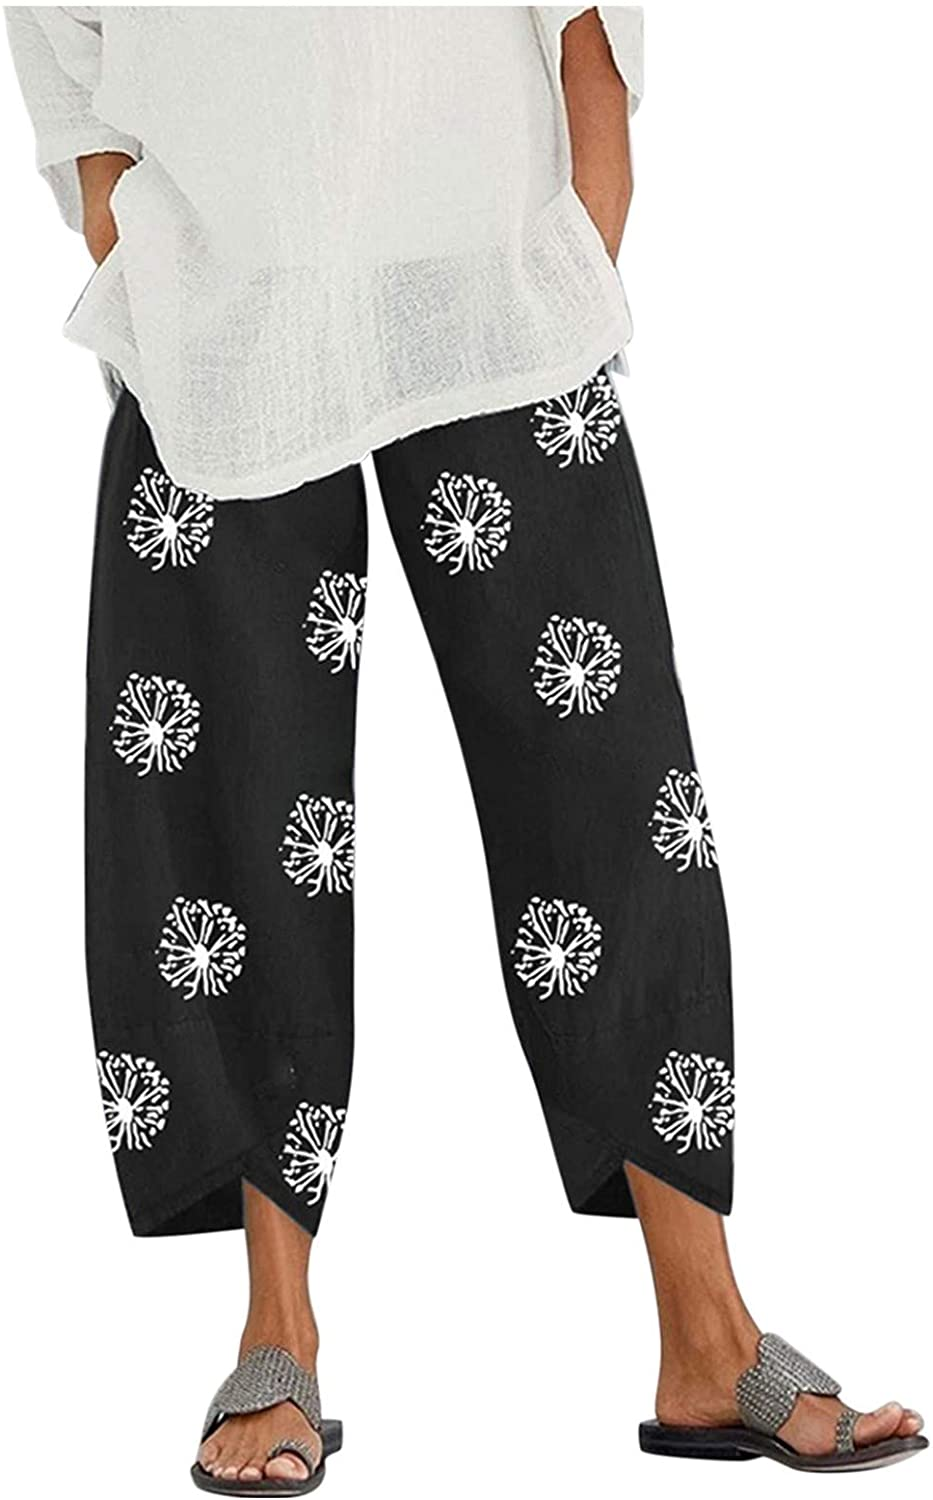 XLLX Womens Casual Pants Capris Embroidery Elastic Waist Comfy Trousers with Pockets